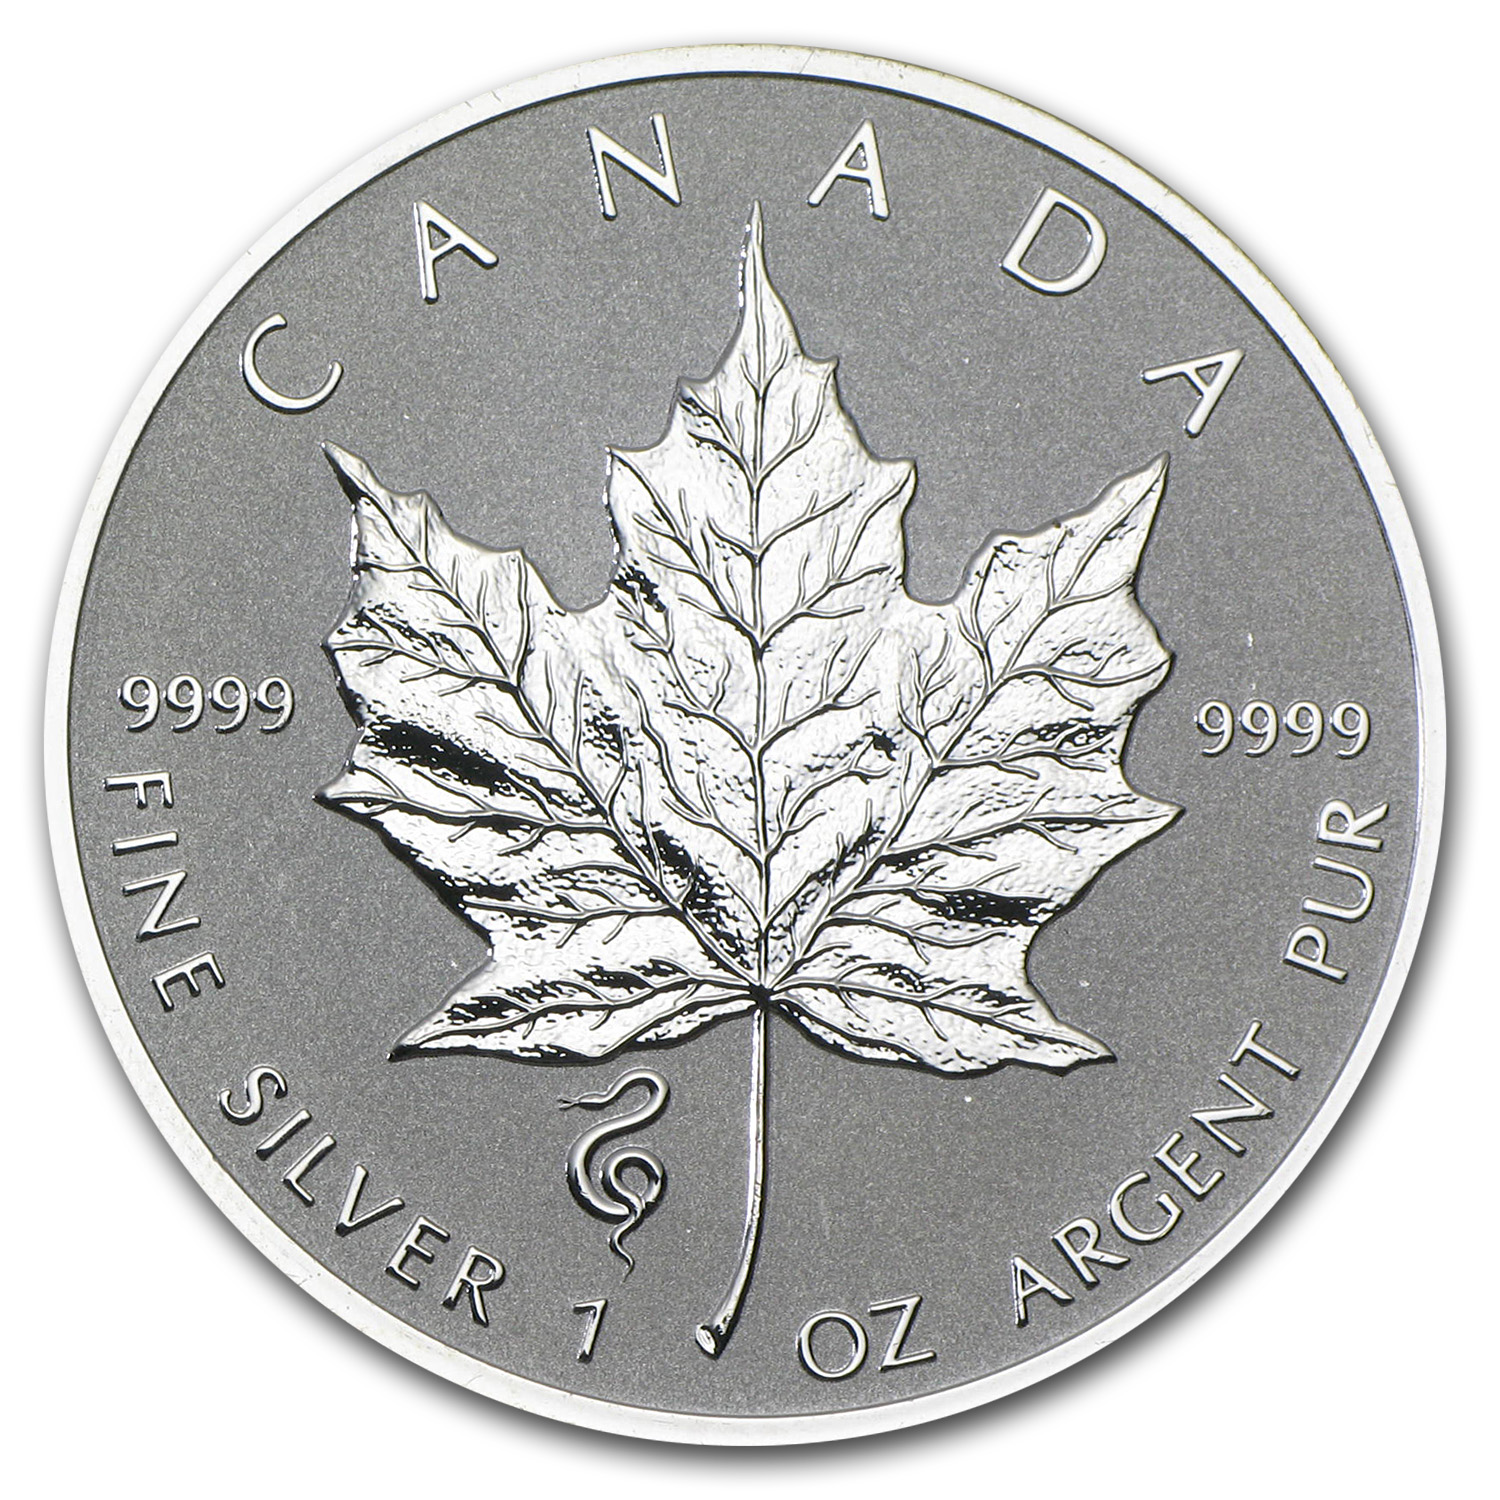 2013 1 oz Silver Maple Leaf Snake Privy (Abrasions, Spotted)